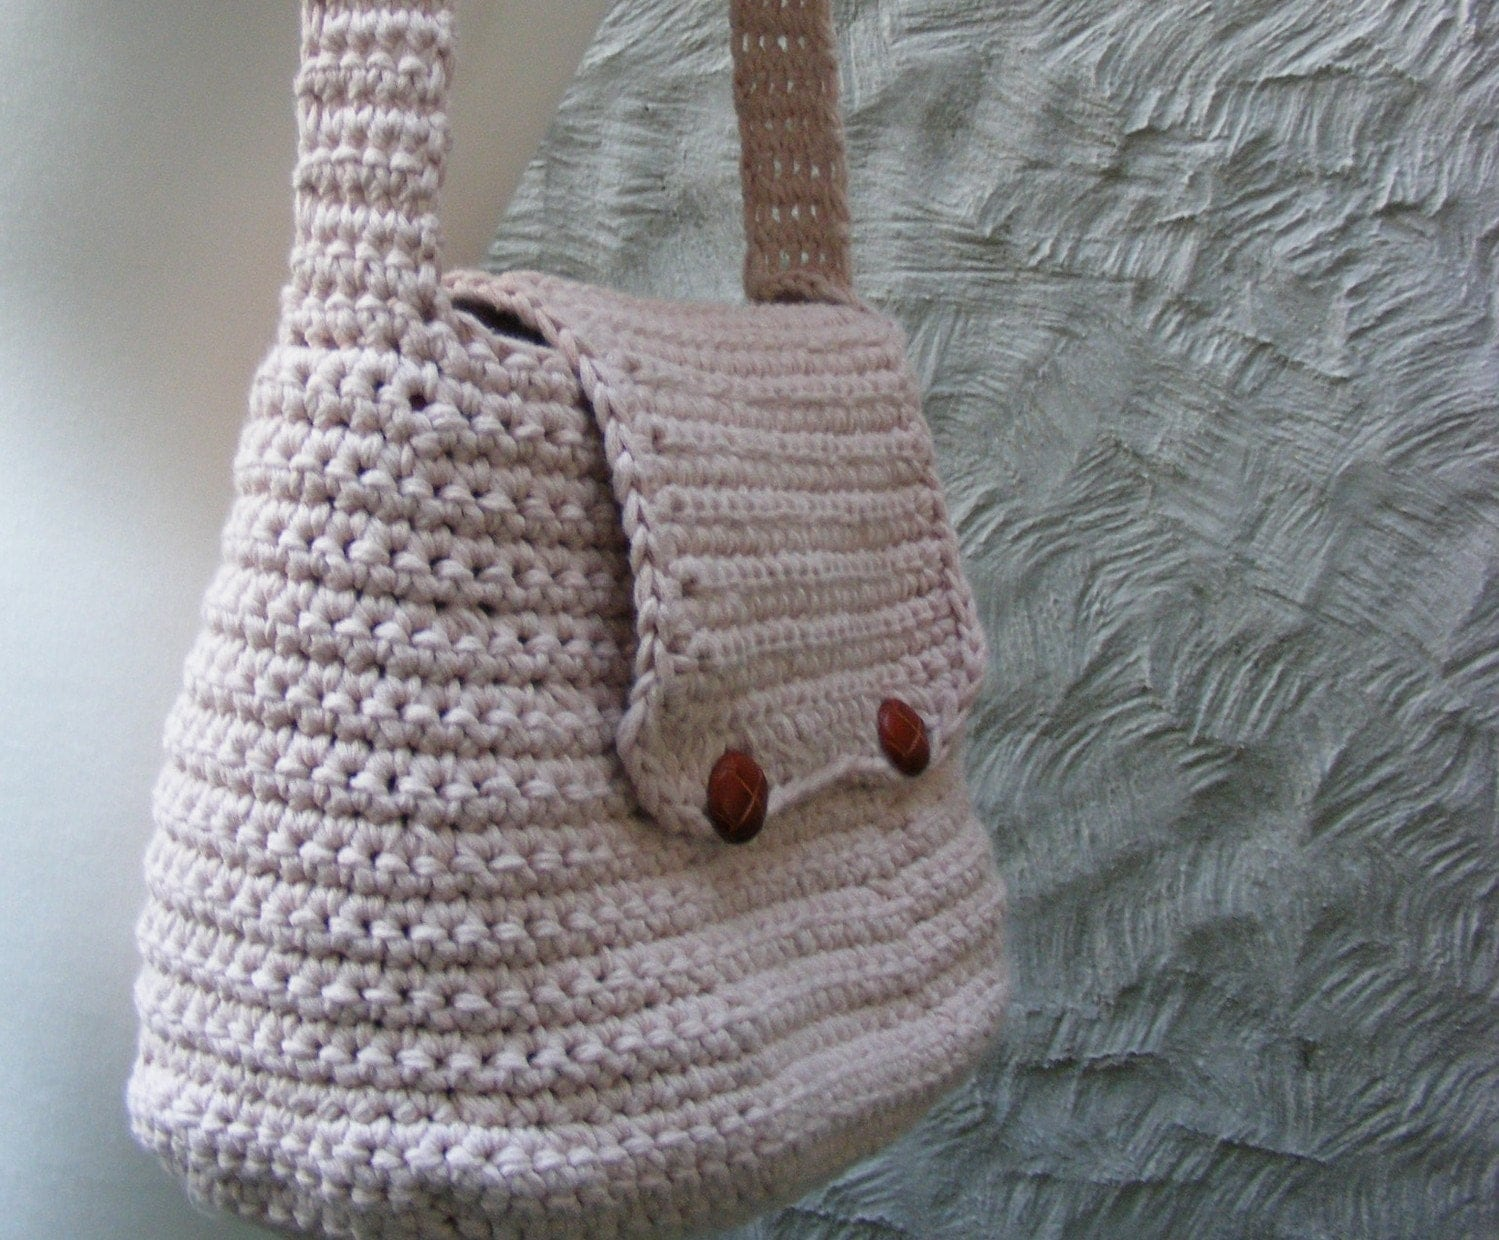 EASY CROCHET PURSE PATTERNS How To Crochet